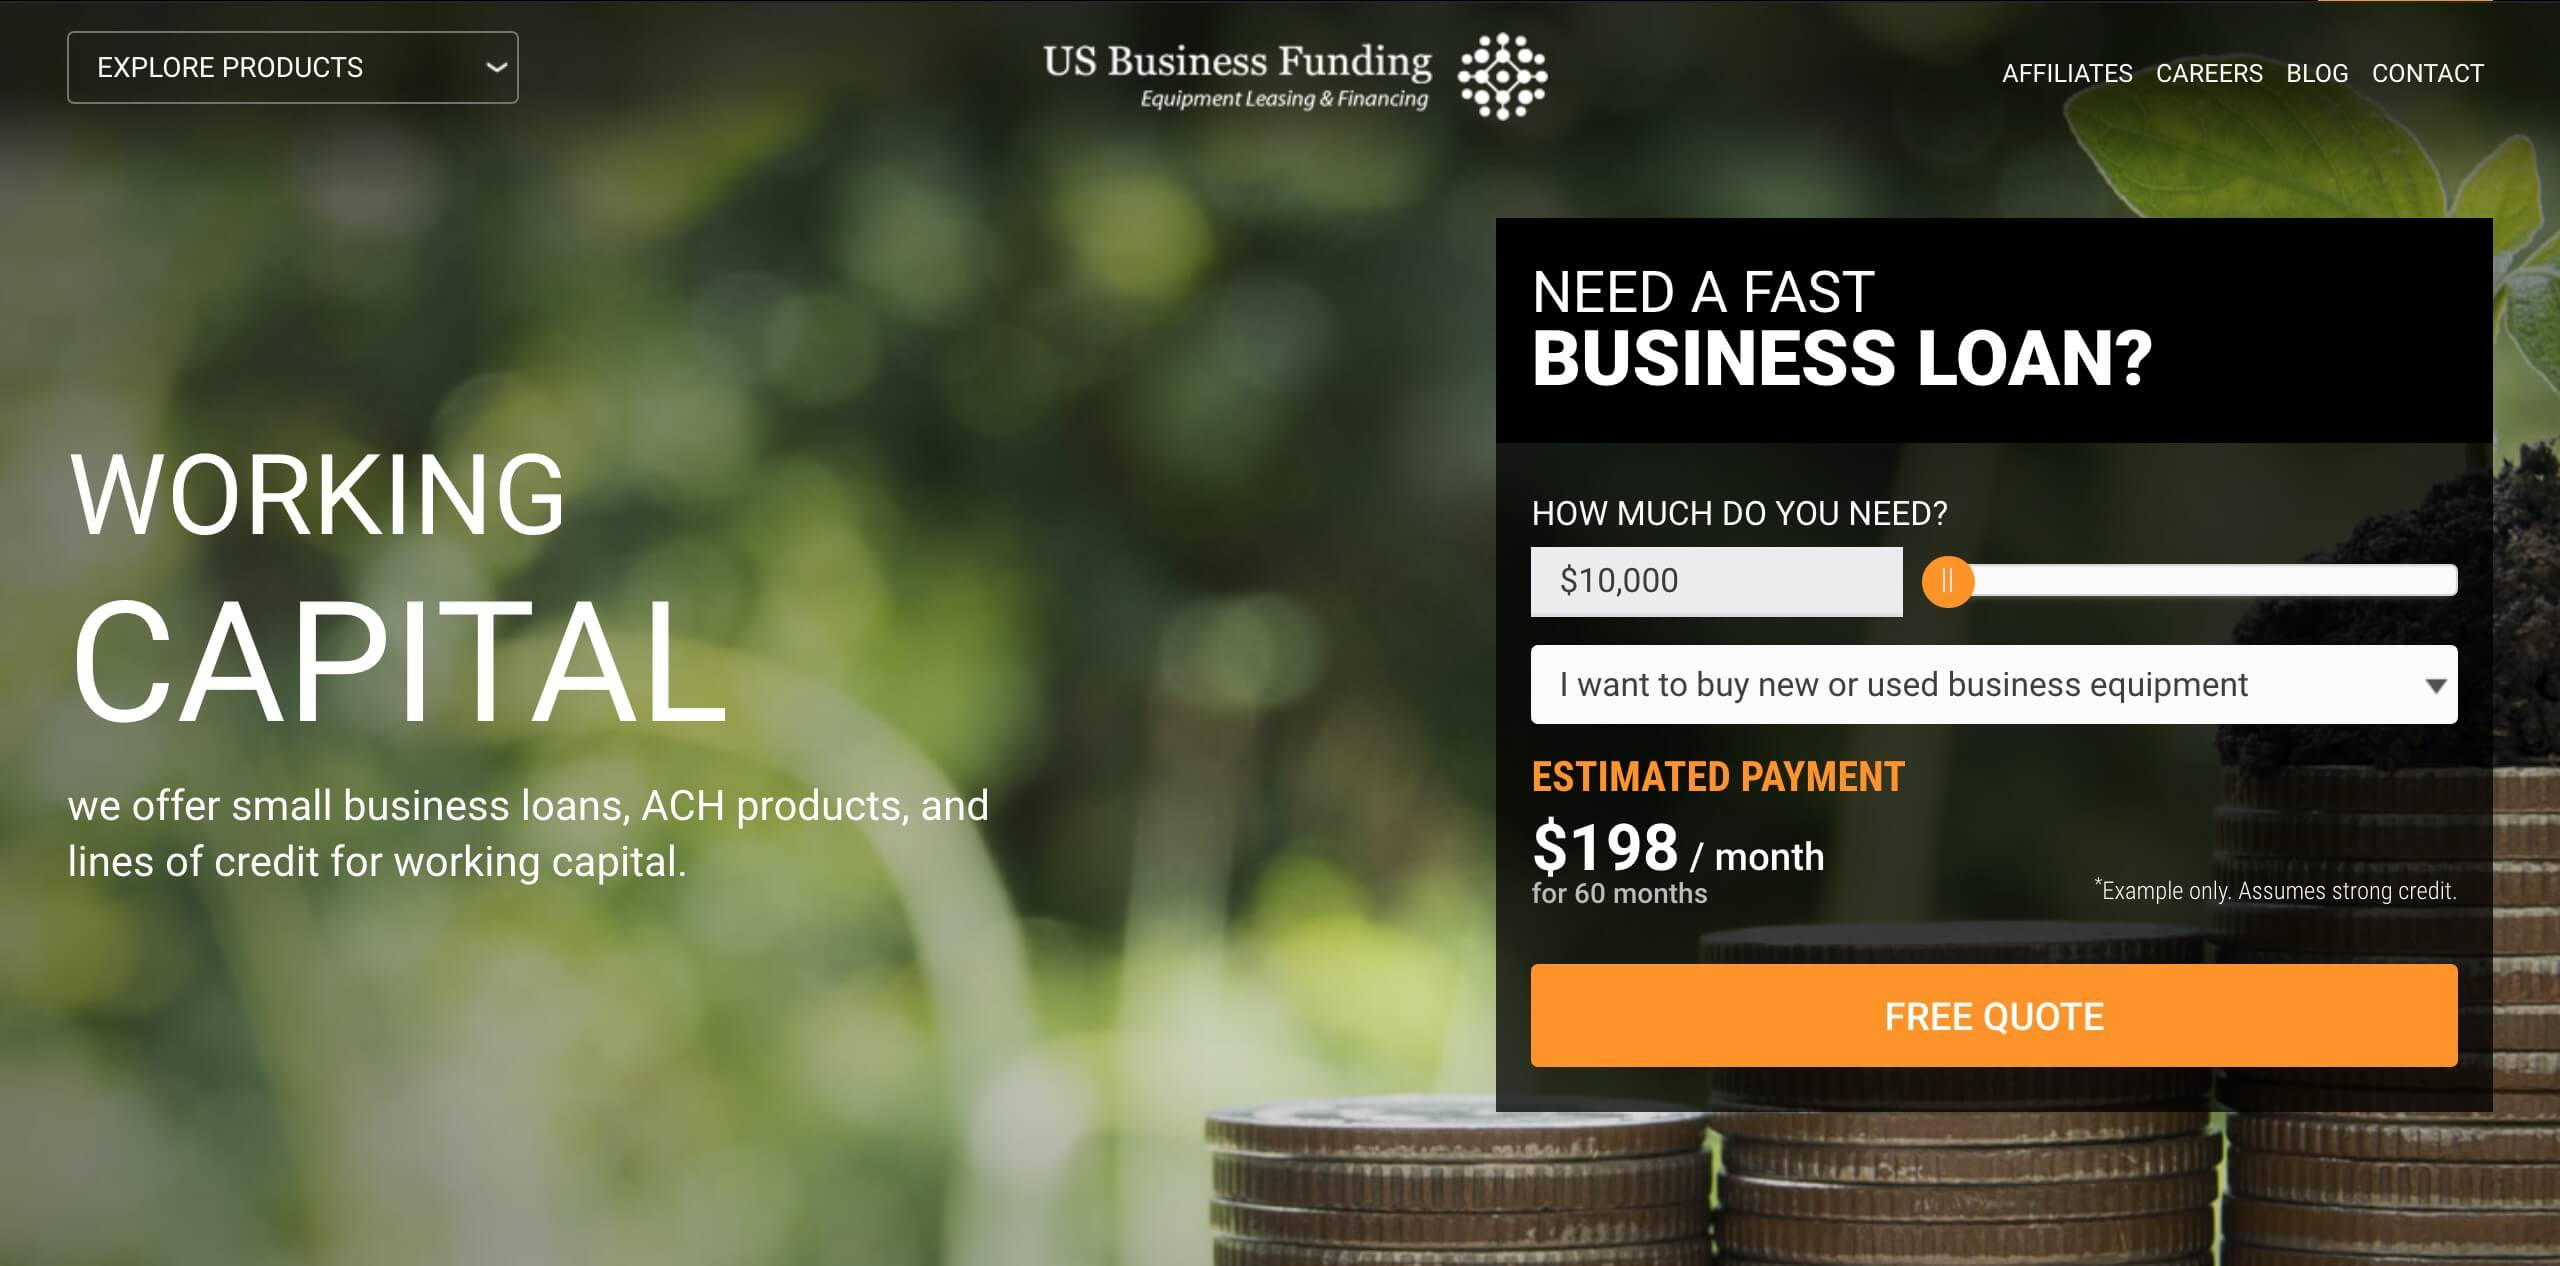 US Business Funding home page